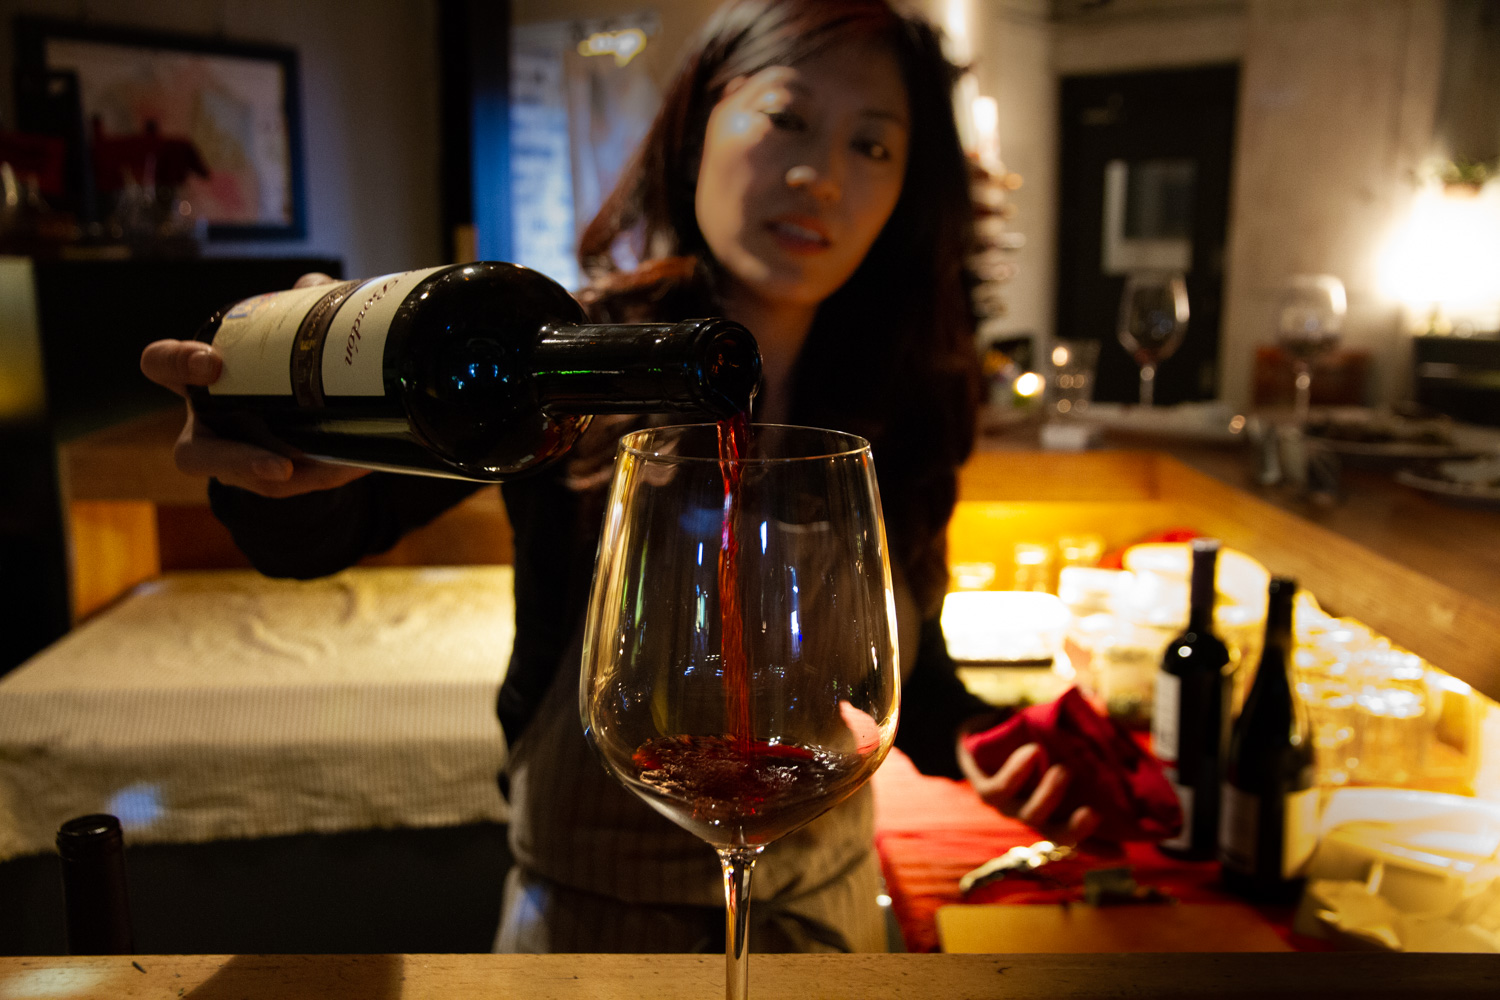 SU-YEON LEE - A SOMMELIER IN SEOUL